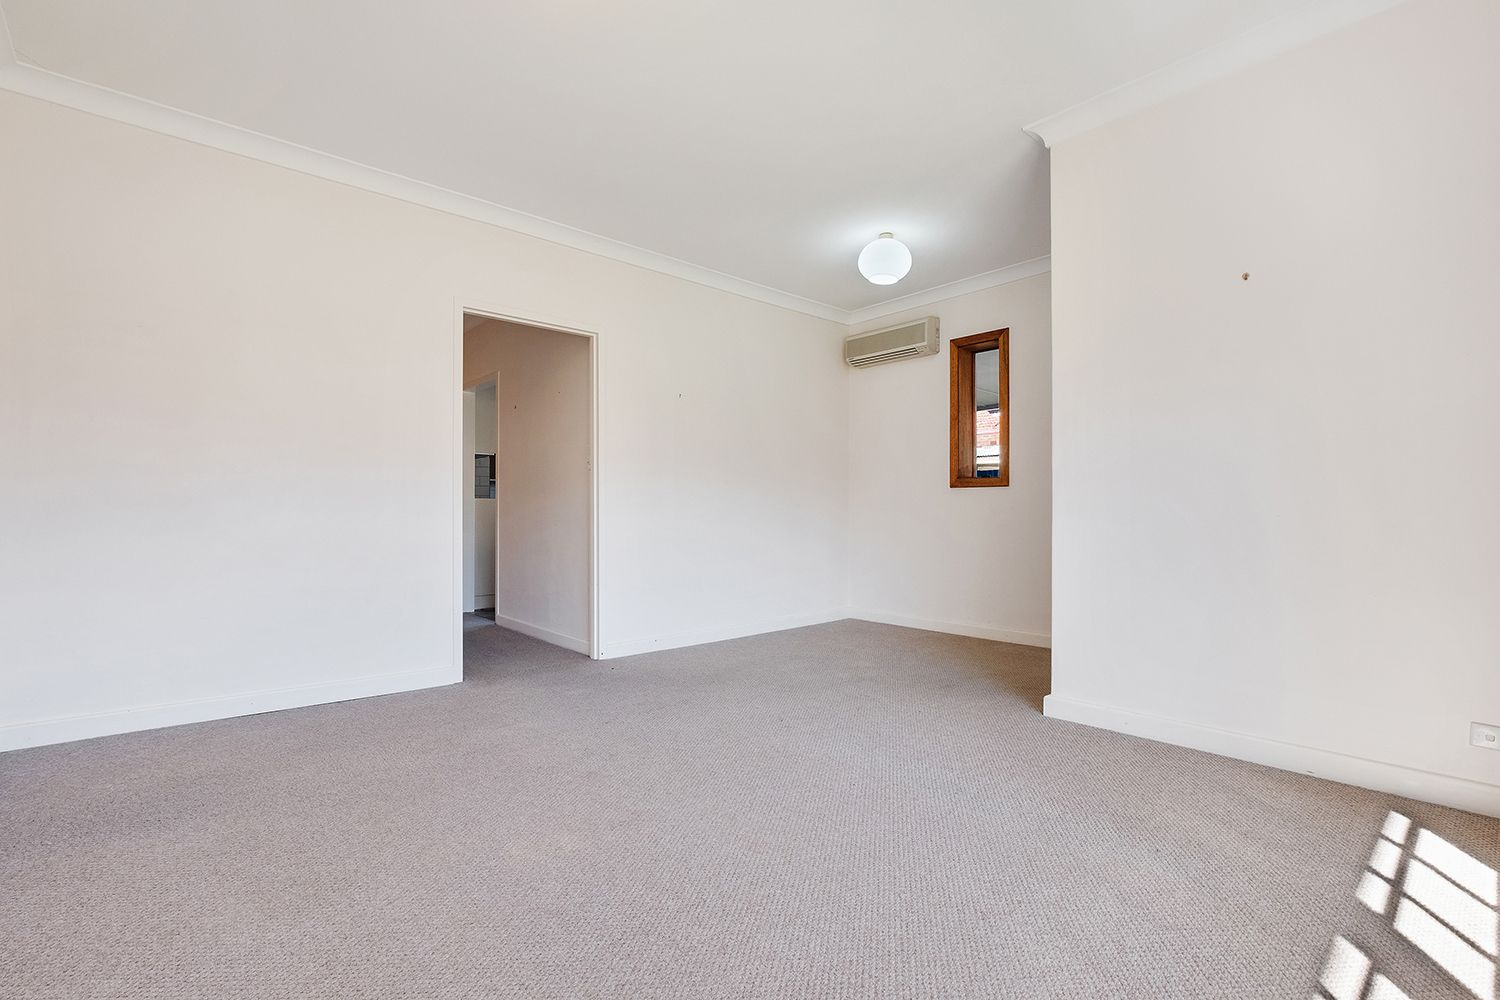 7/23 William Street, Hawthorn SA 5062, Image 2